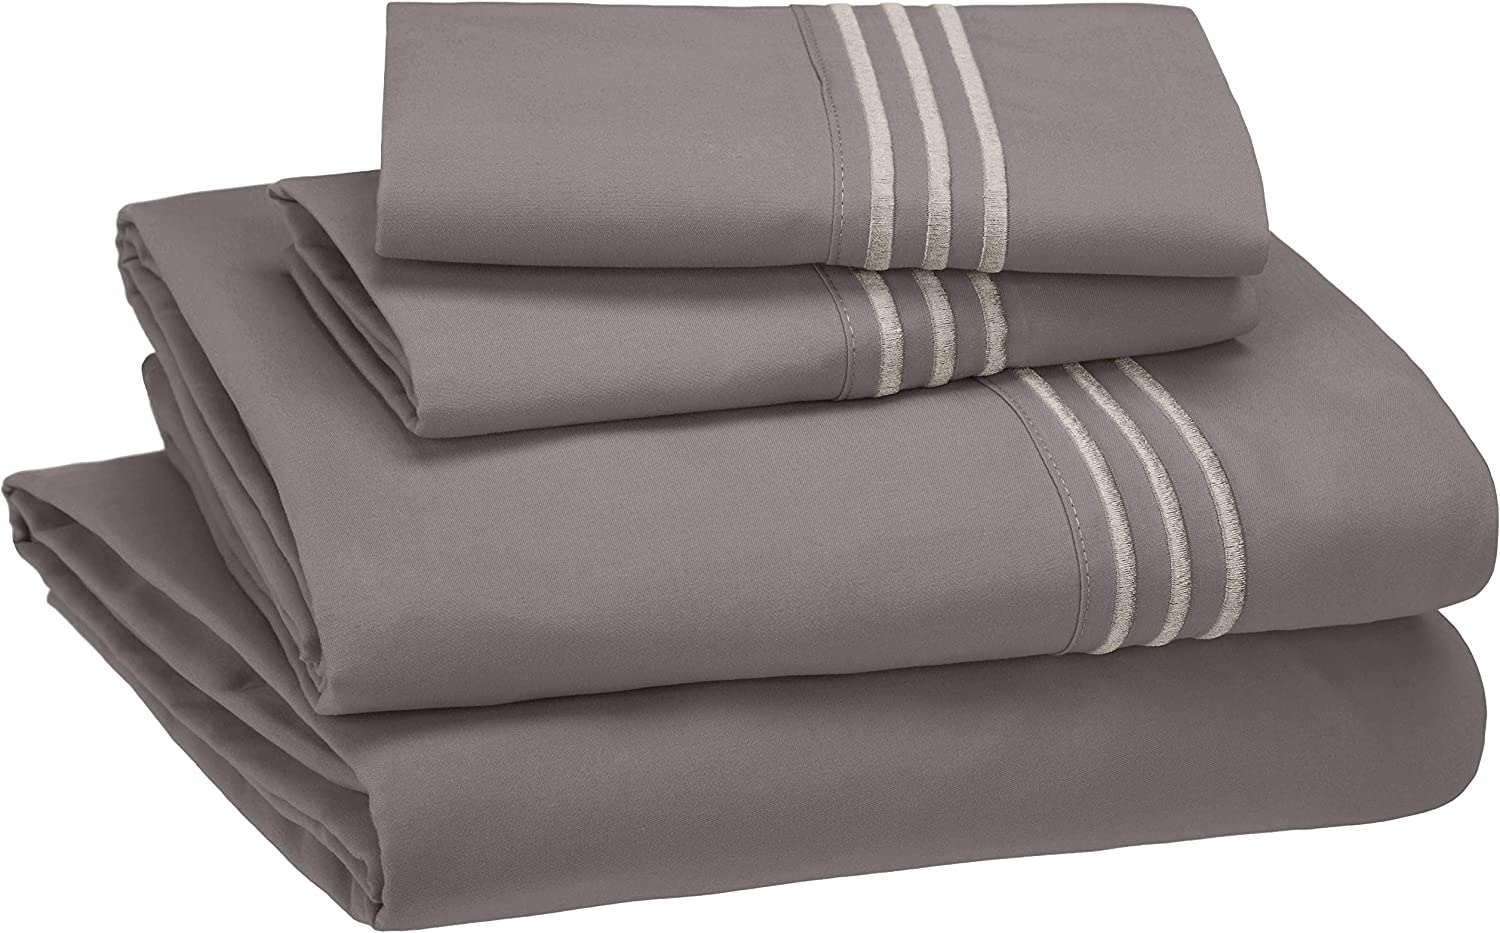 AmazonBasics Premium, Easy-Wash Embroidered Hotel Stitch Sheet Set - Queen, Dark Grey